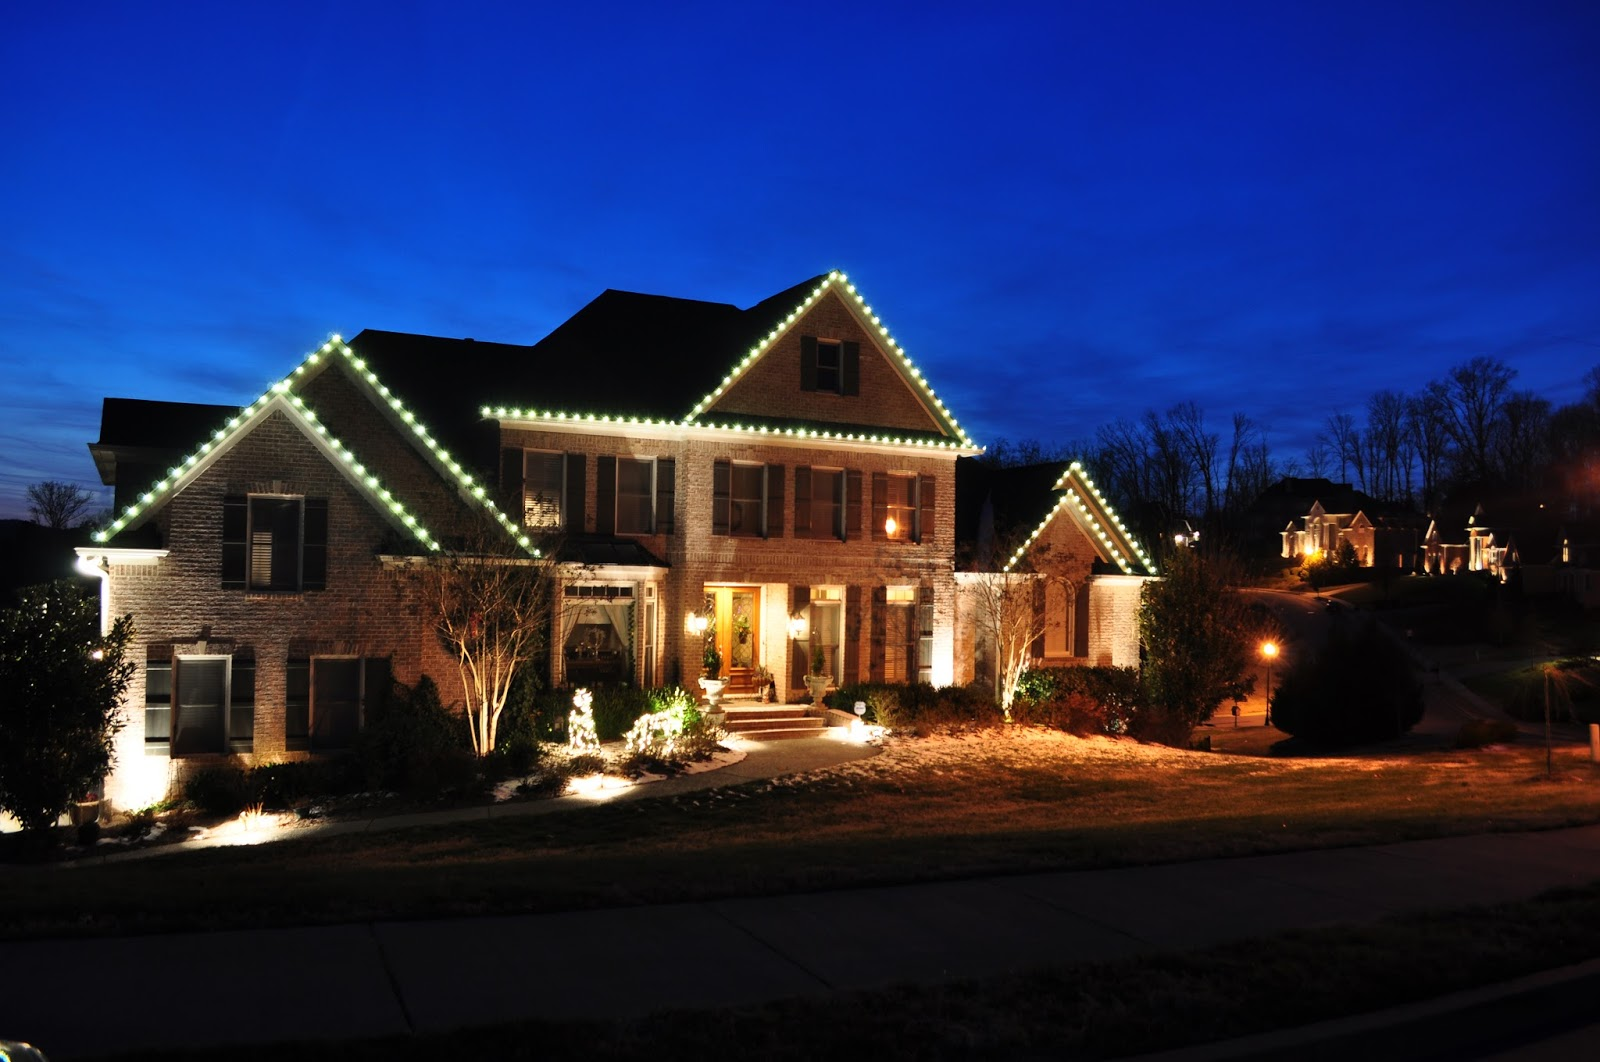 Led Christmas Lights For Room.Light N Shine Indoor Outdoor Led Christmas Lighting Ideas